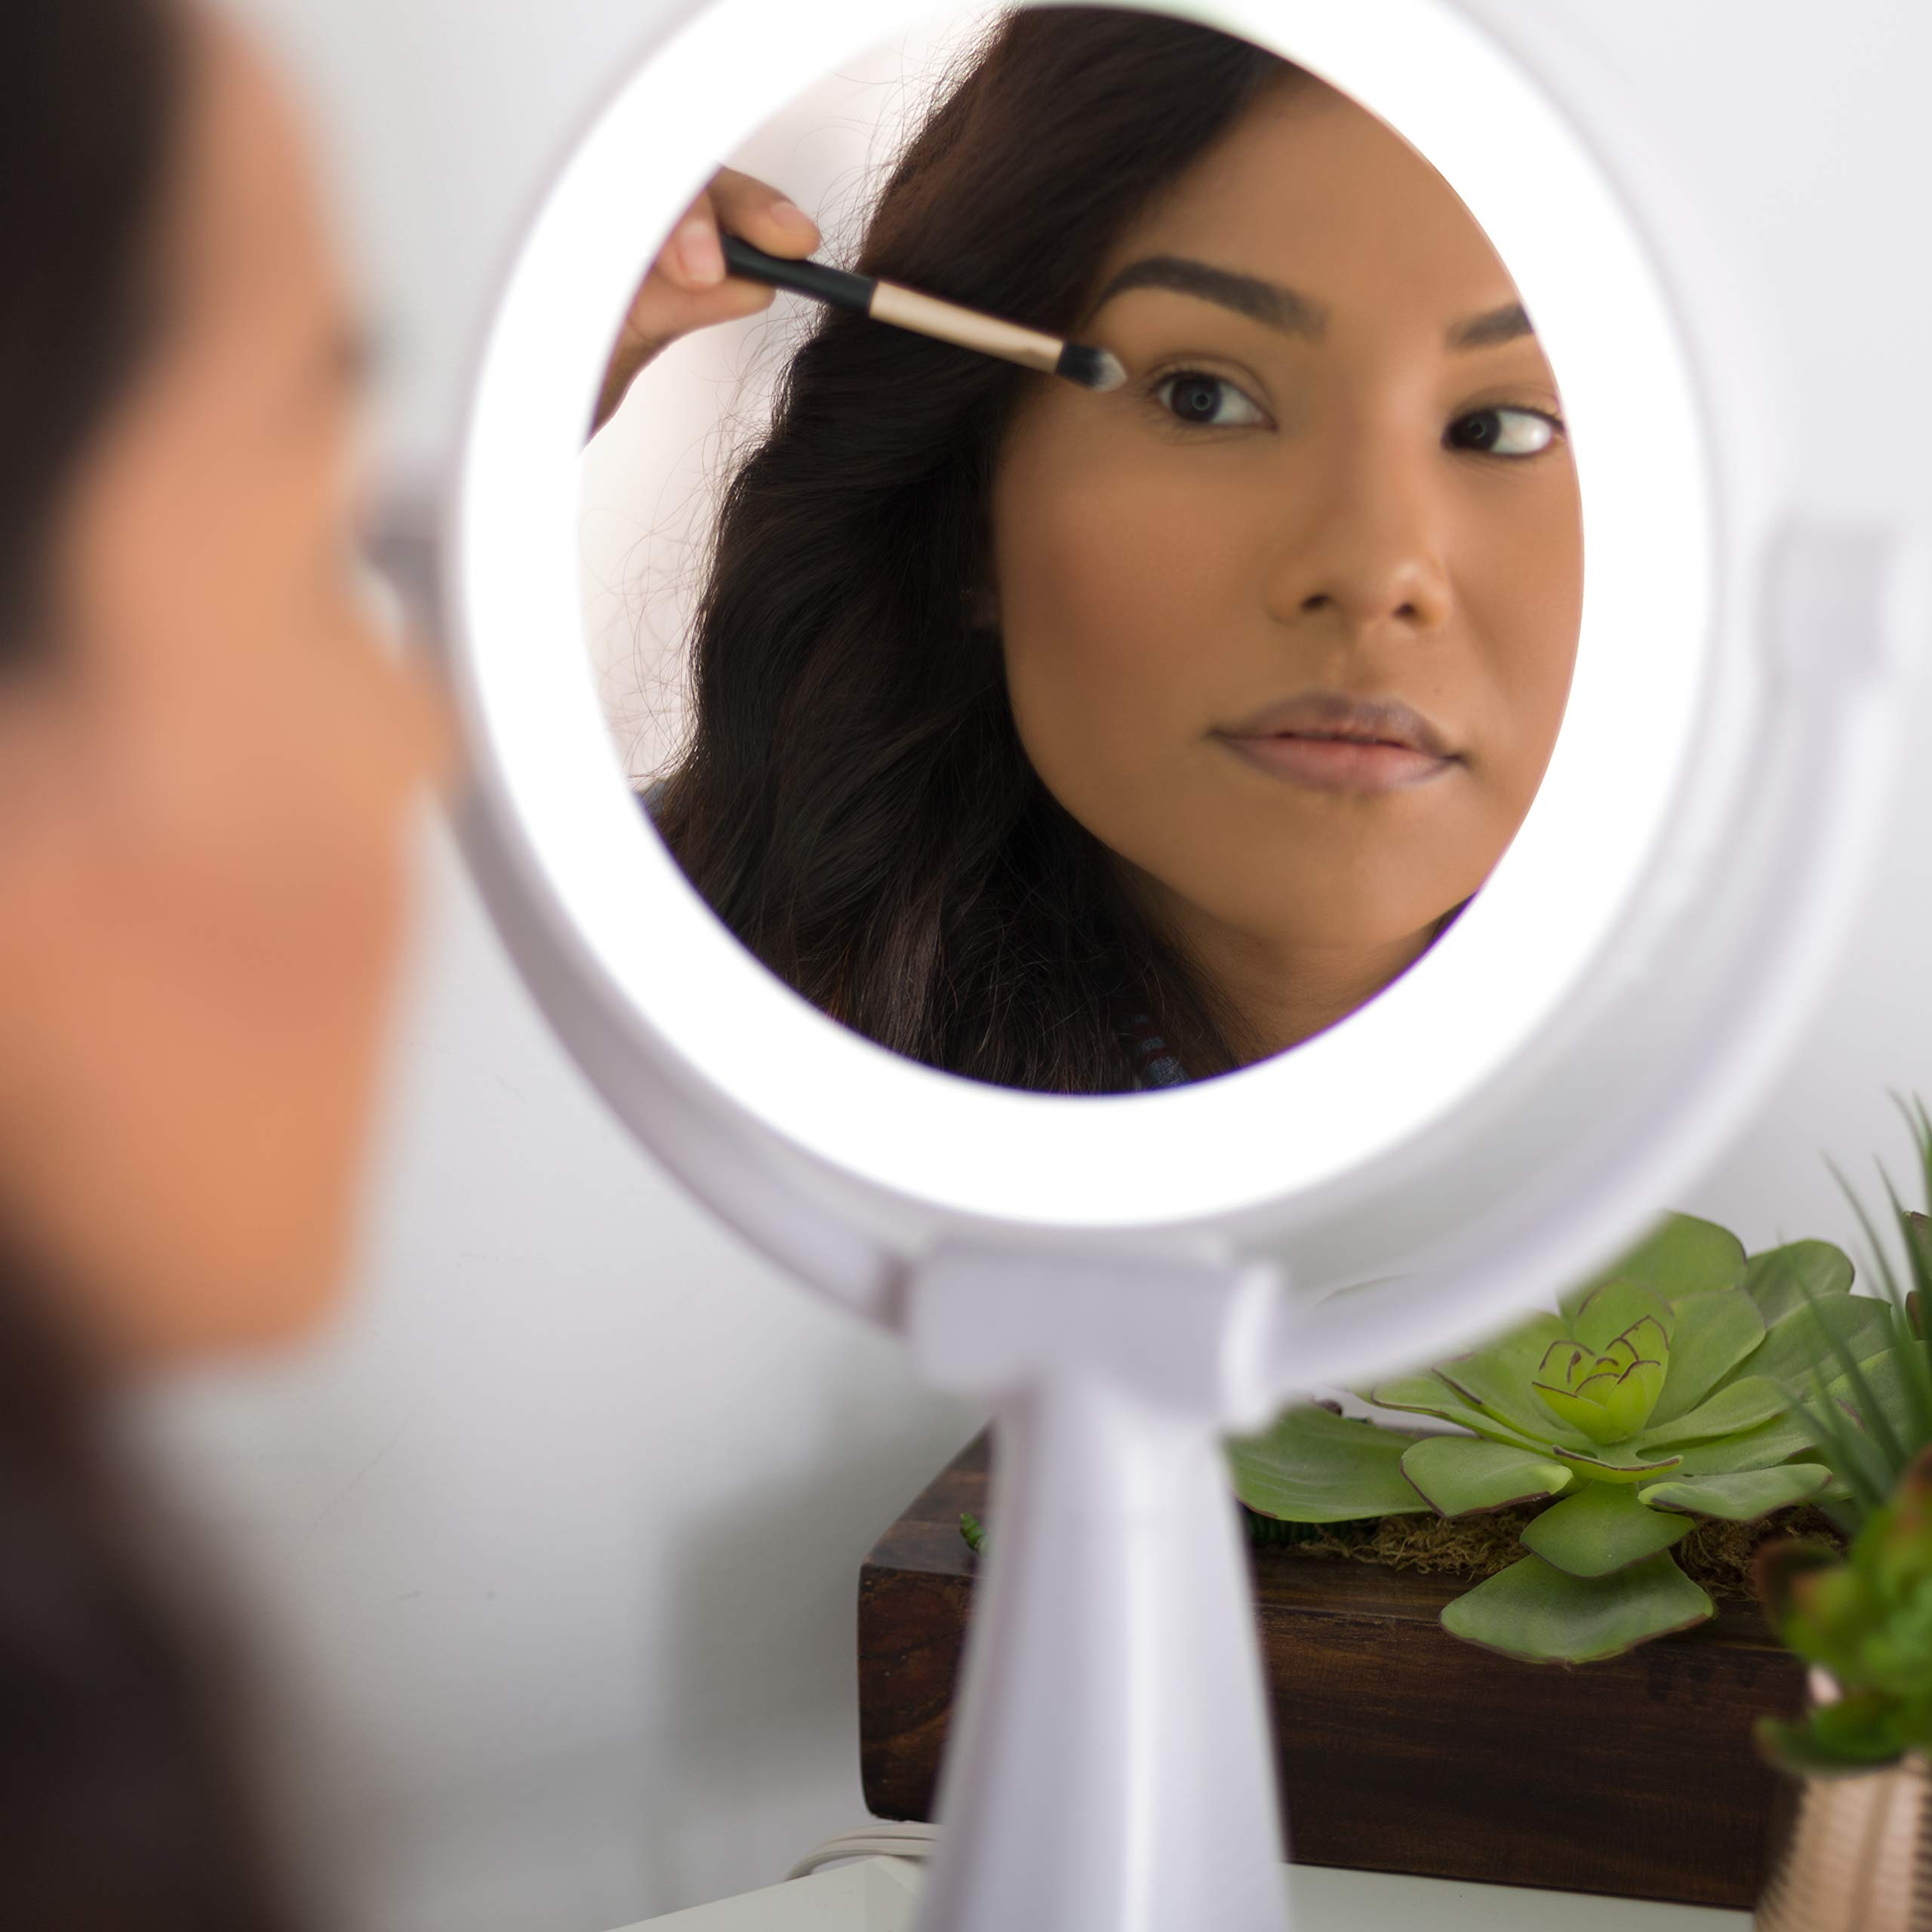 Zadro Max Bright Sunlight Dual Sided Vanity Mirror, White, 10X/1X Magnification by Zadro (Image #3)